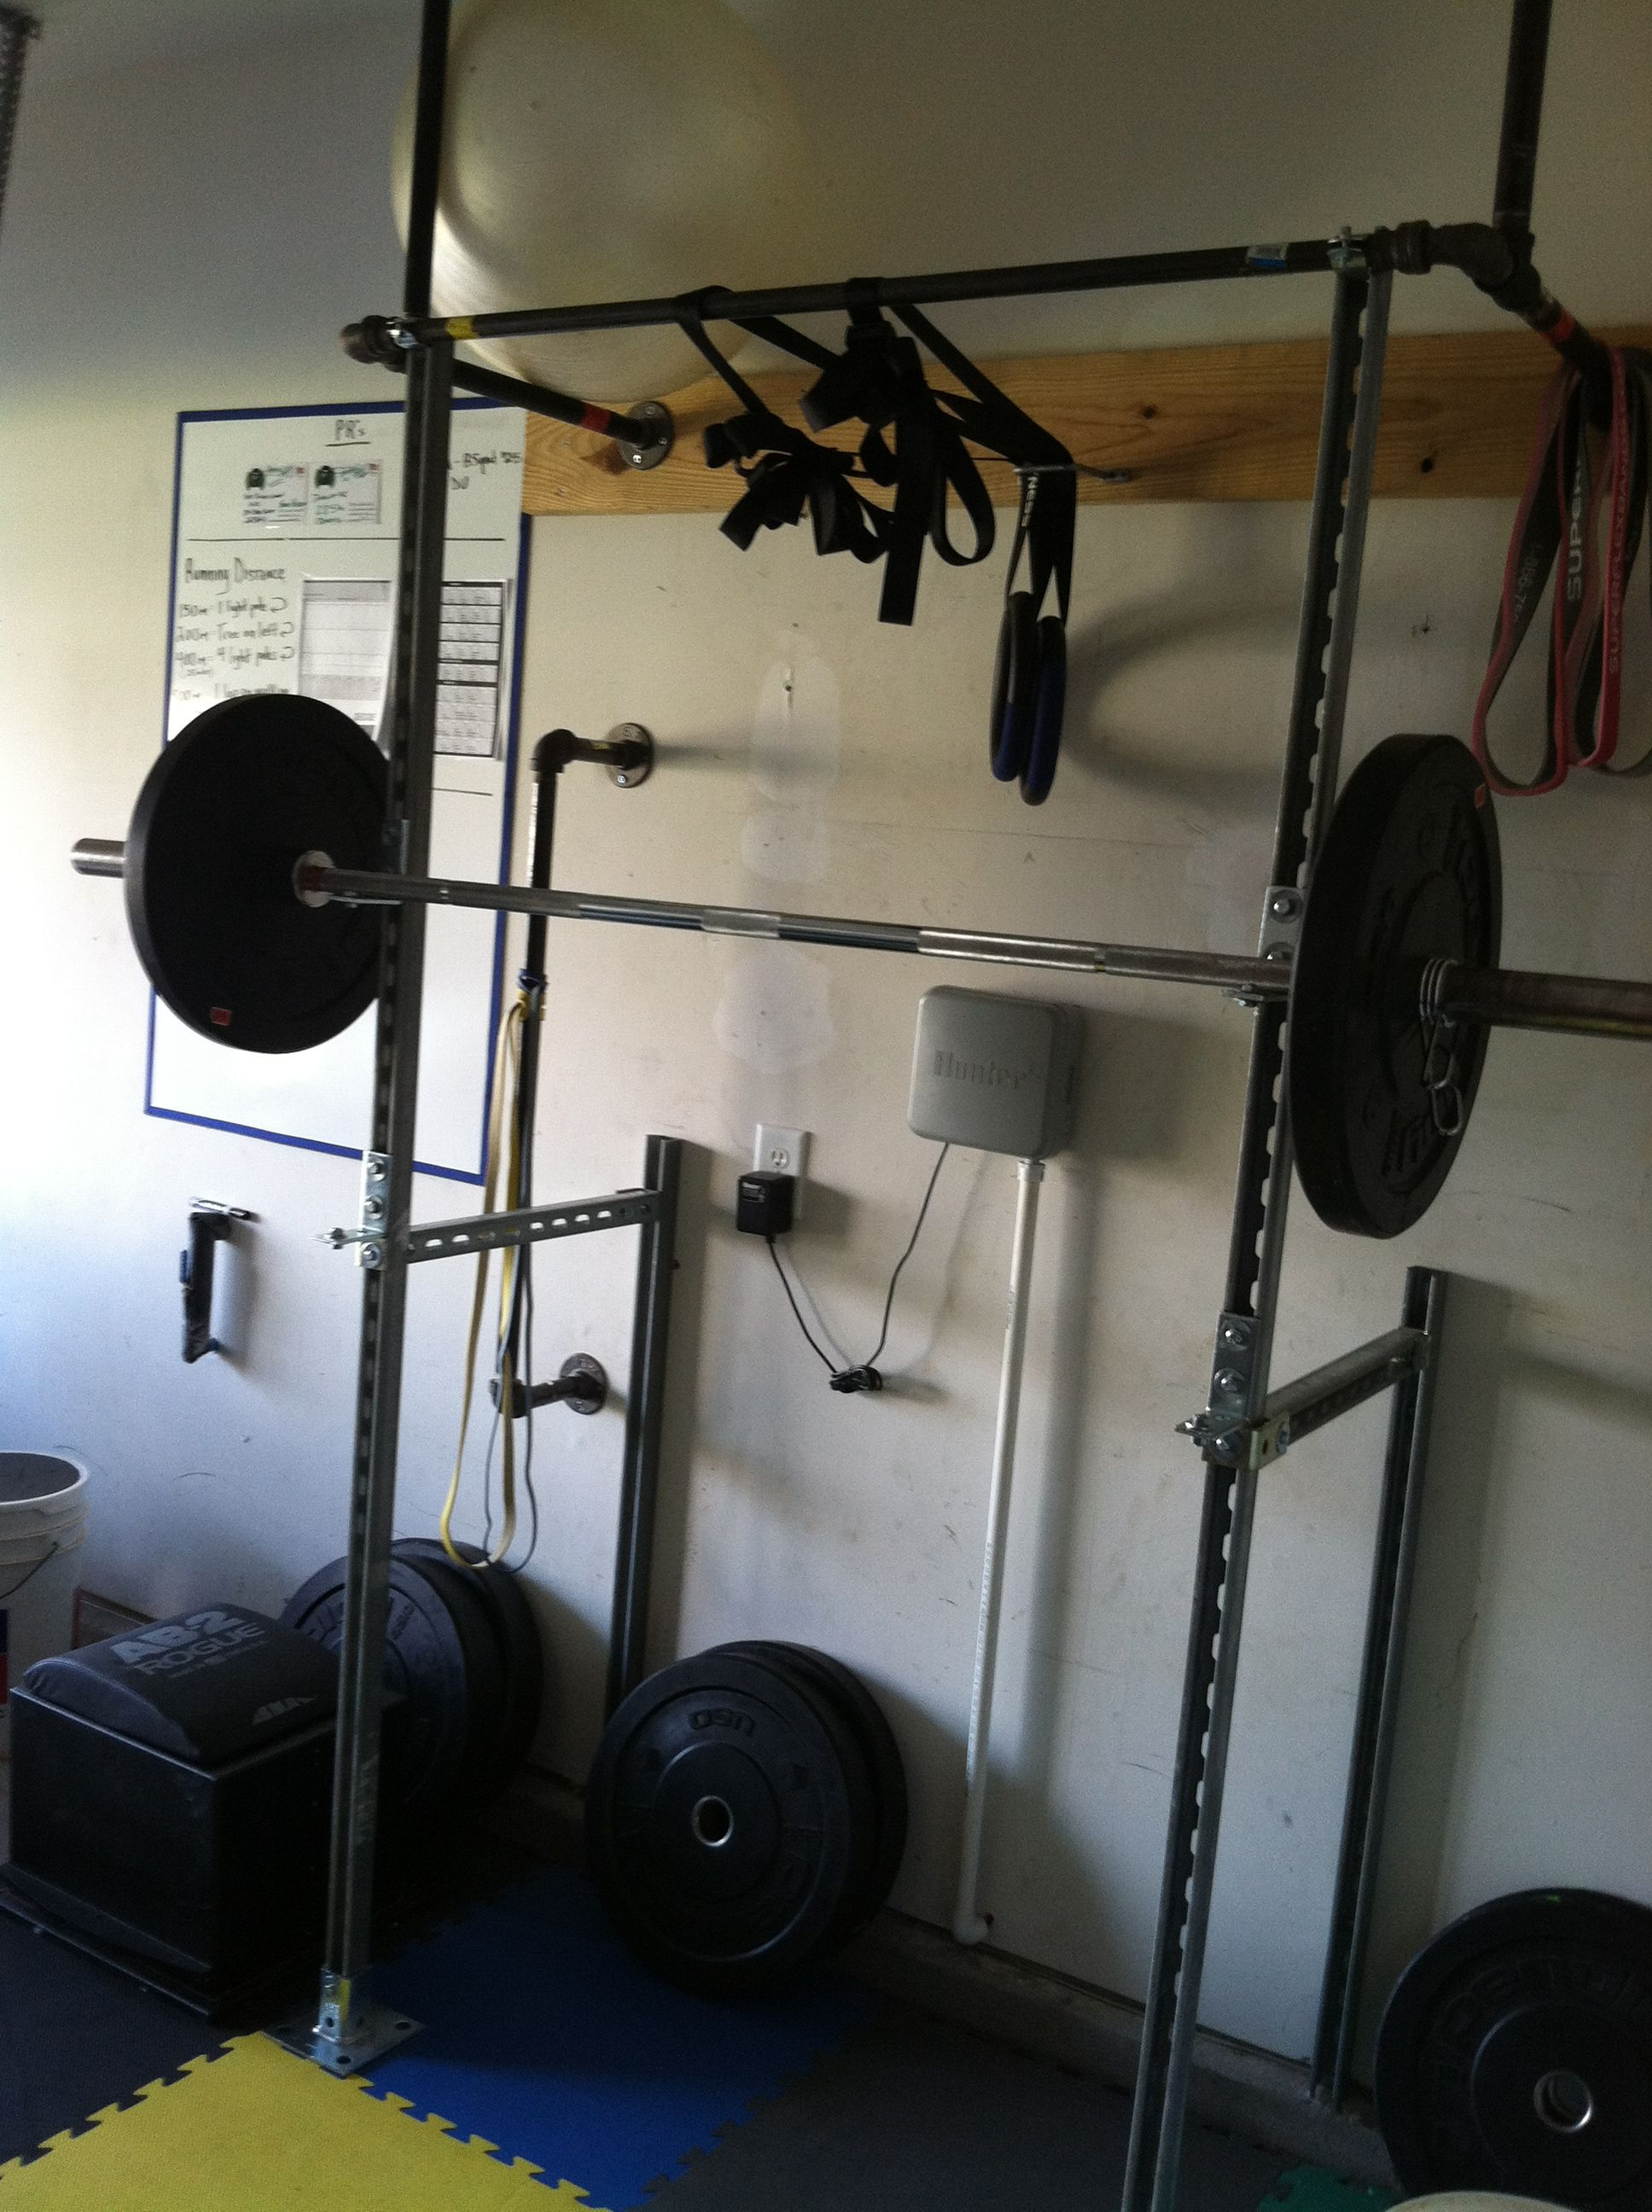 Garage Gym Reviews Diy Platform Pin By C Jones On Weekend Worrier In 2019 At Home Gym Home Gym